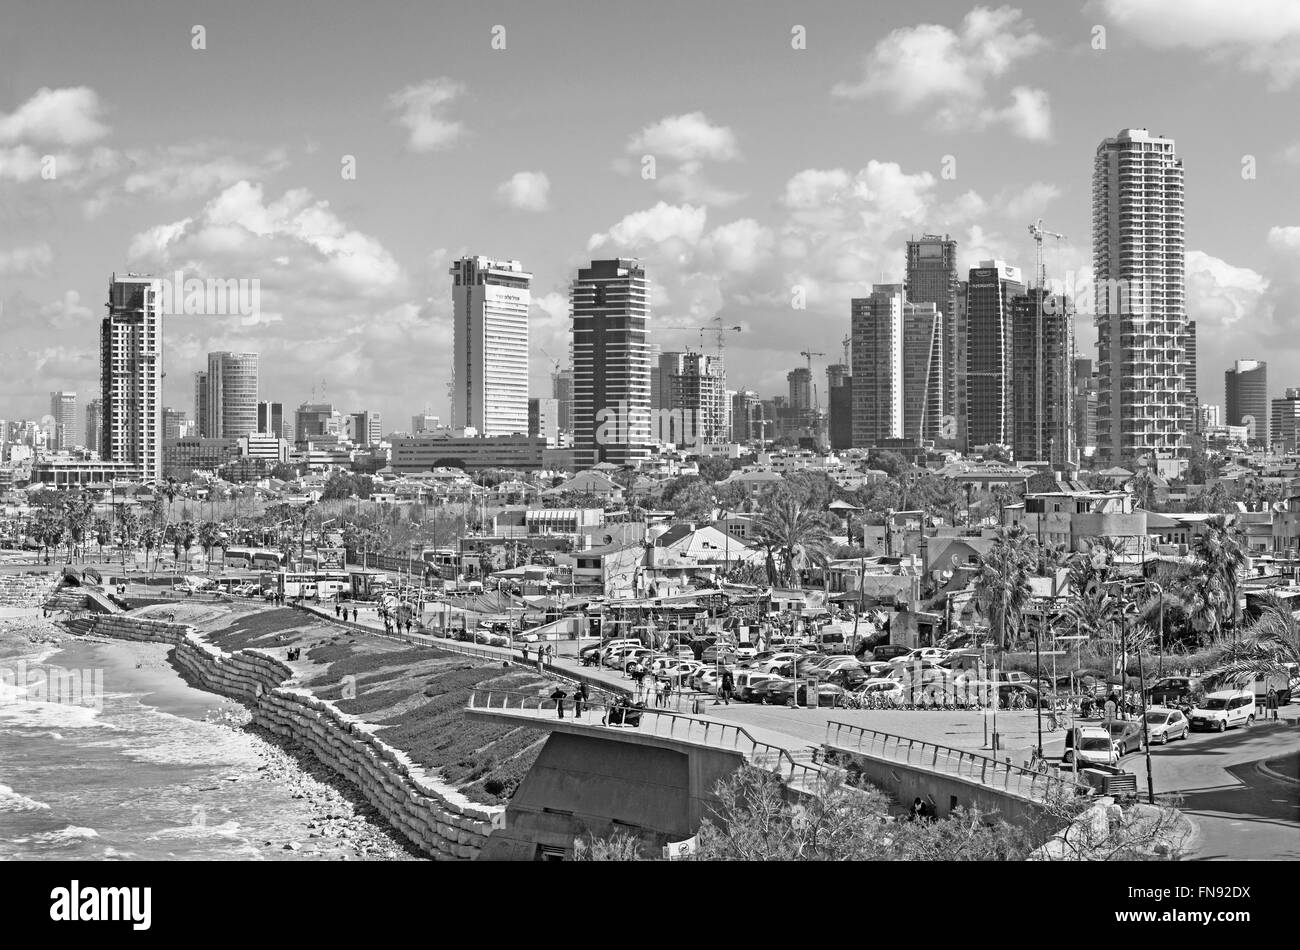 TEL AVIV, ISRAEL - MARCH 2, 2015: The coast and waterfront of Tel Aviv - Stock Image